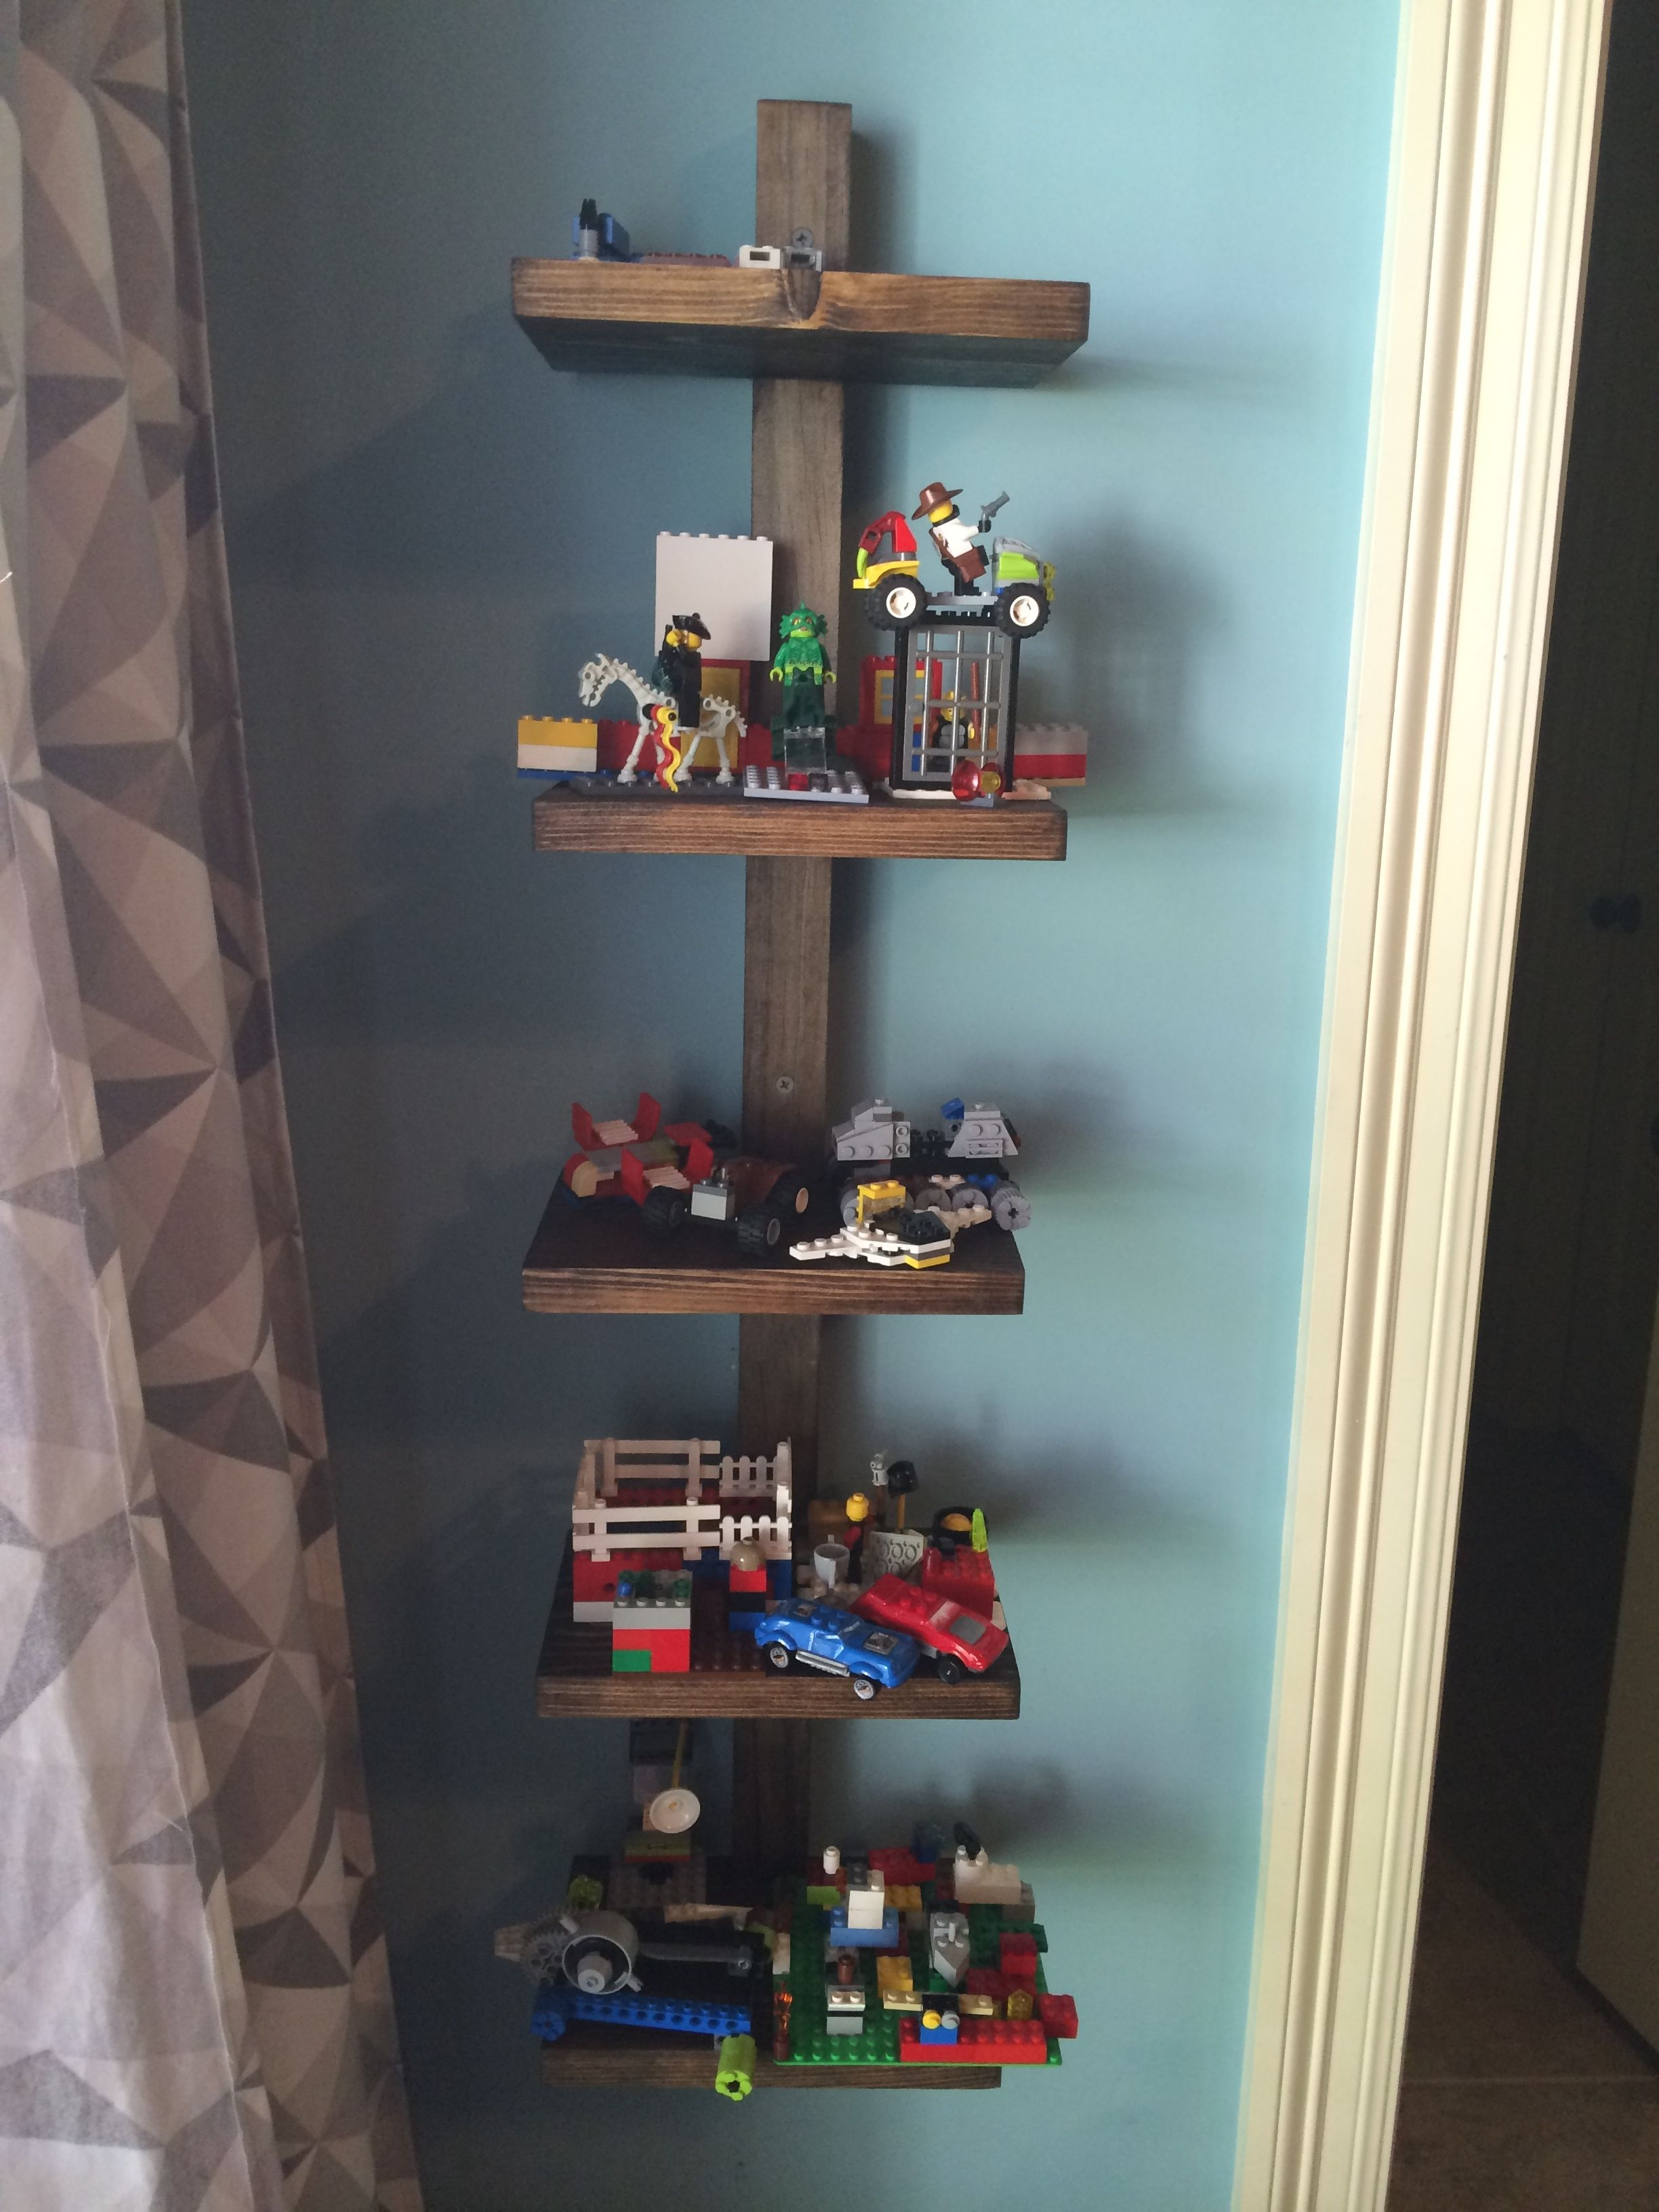 Lego Display Shelf Do It Yourself Home Projects From Ana White Ryker In 2019 Lego Display